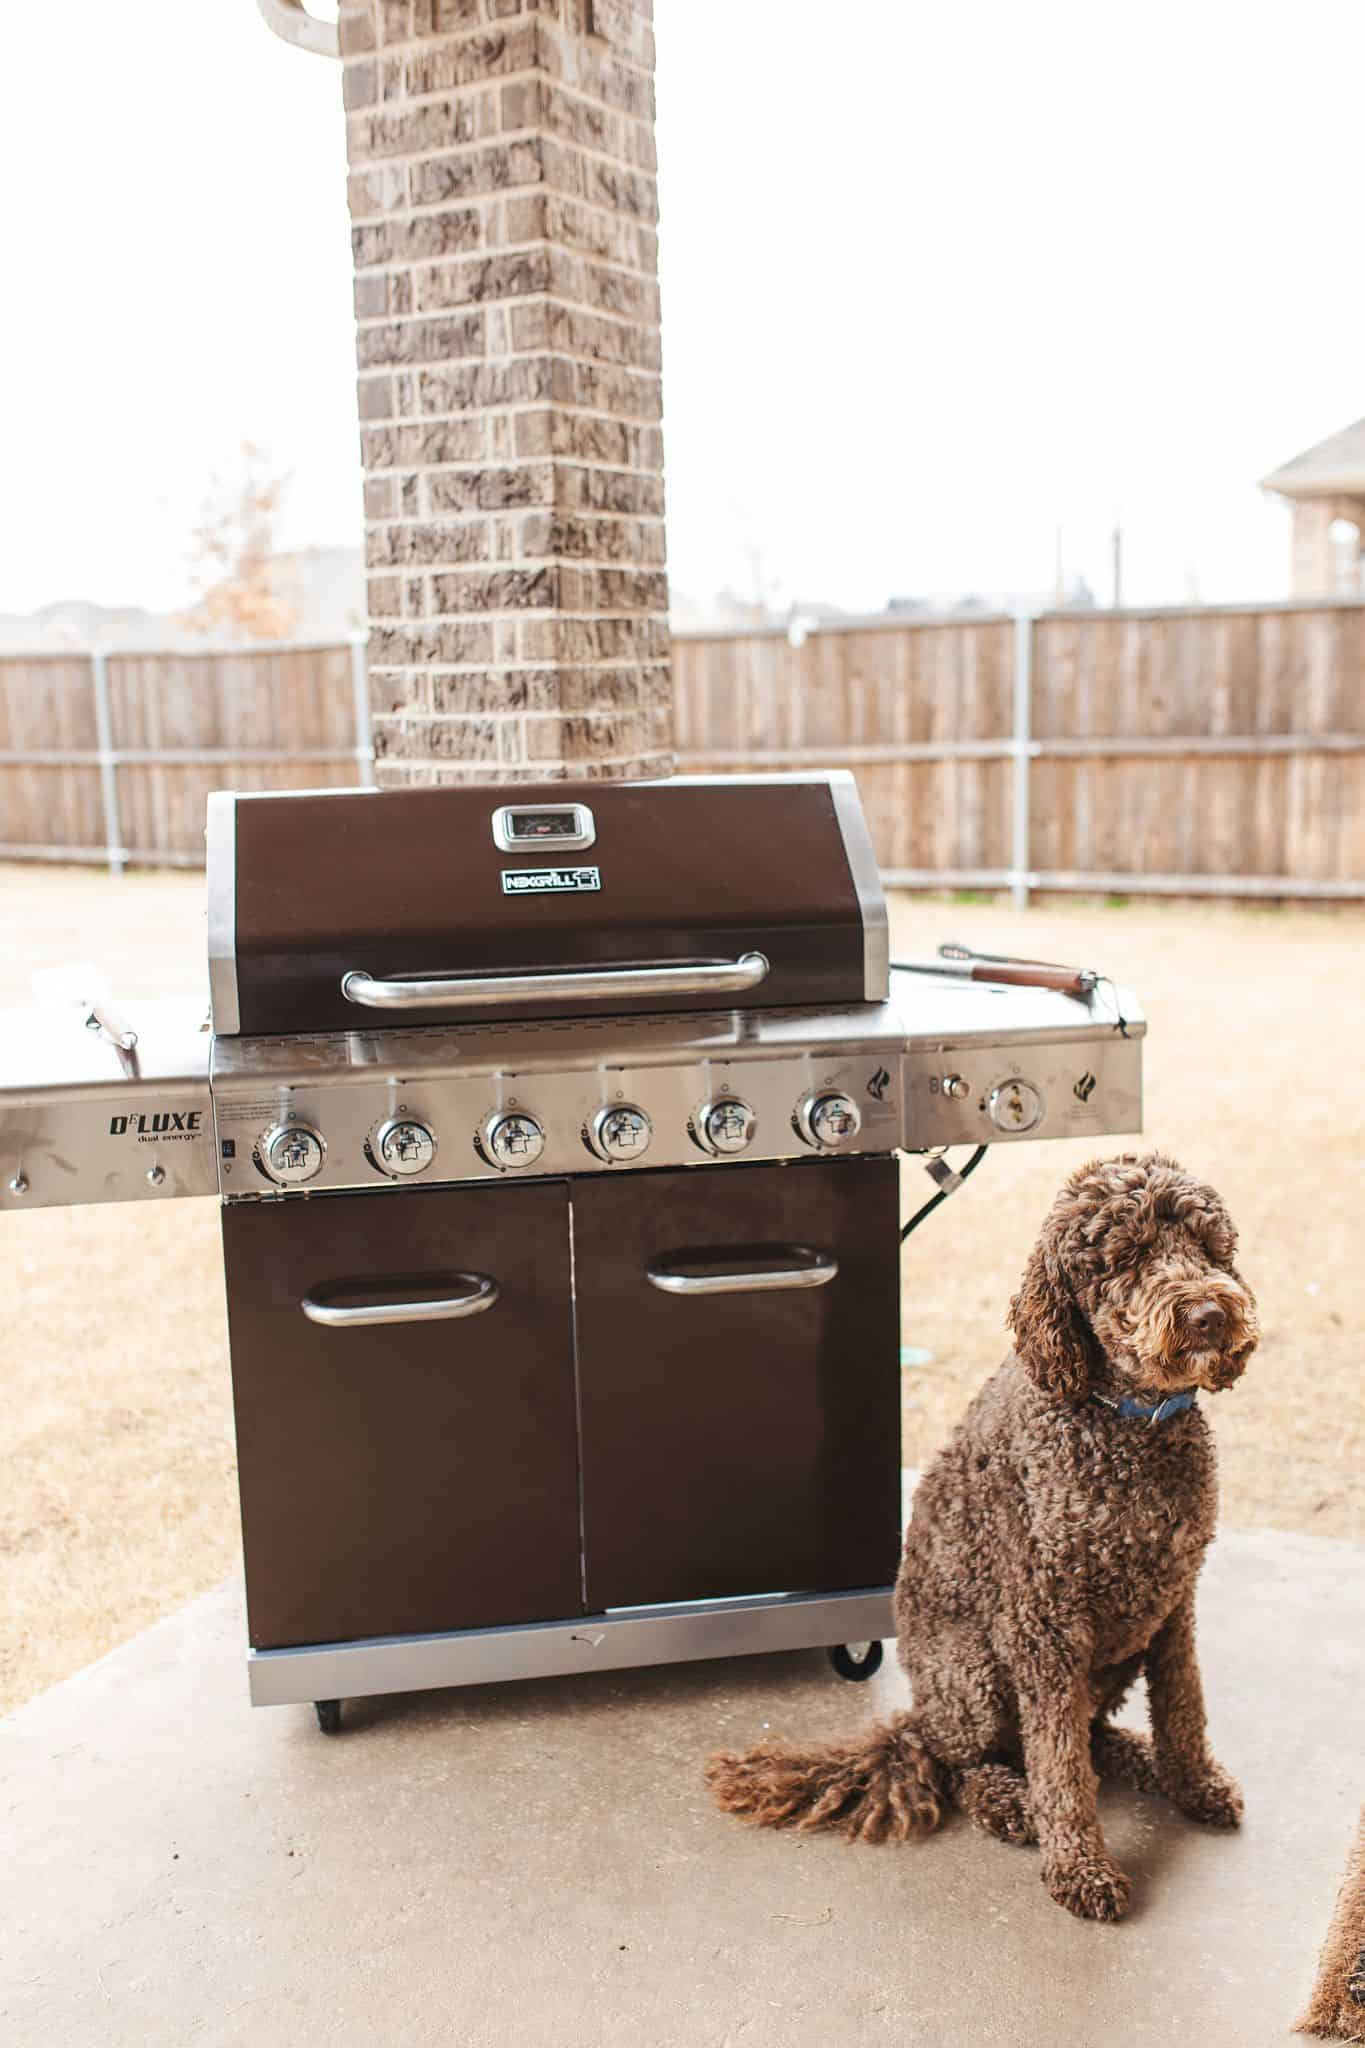 Home Depot Valentine's Day Gifts for Him by popular Dallas lifestyle blog, Glamorous Versatility: image of a dog sitting in front of a Nexgrill BBQ.